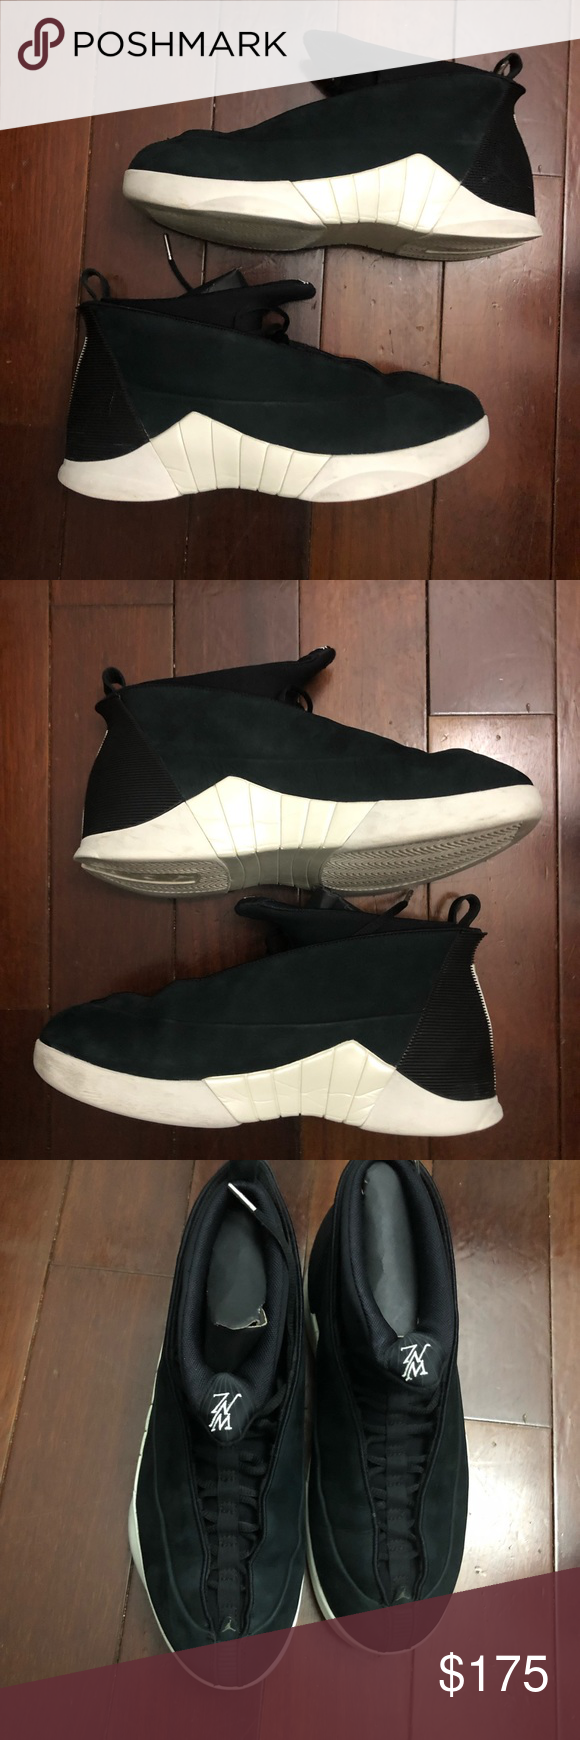 e0544fa38a4 Air Jordan 15 psny black size 11 Worn a few times Retails for $225 Comes  with dust bag Comes with original box Jordan Shoes Sneakers